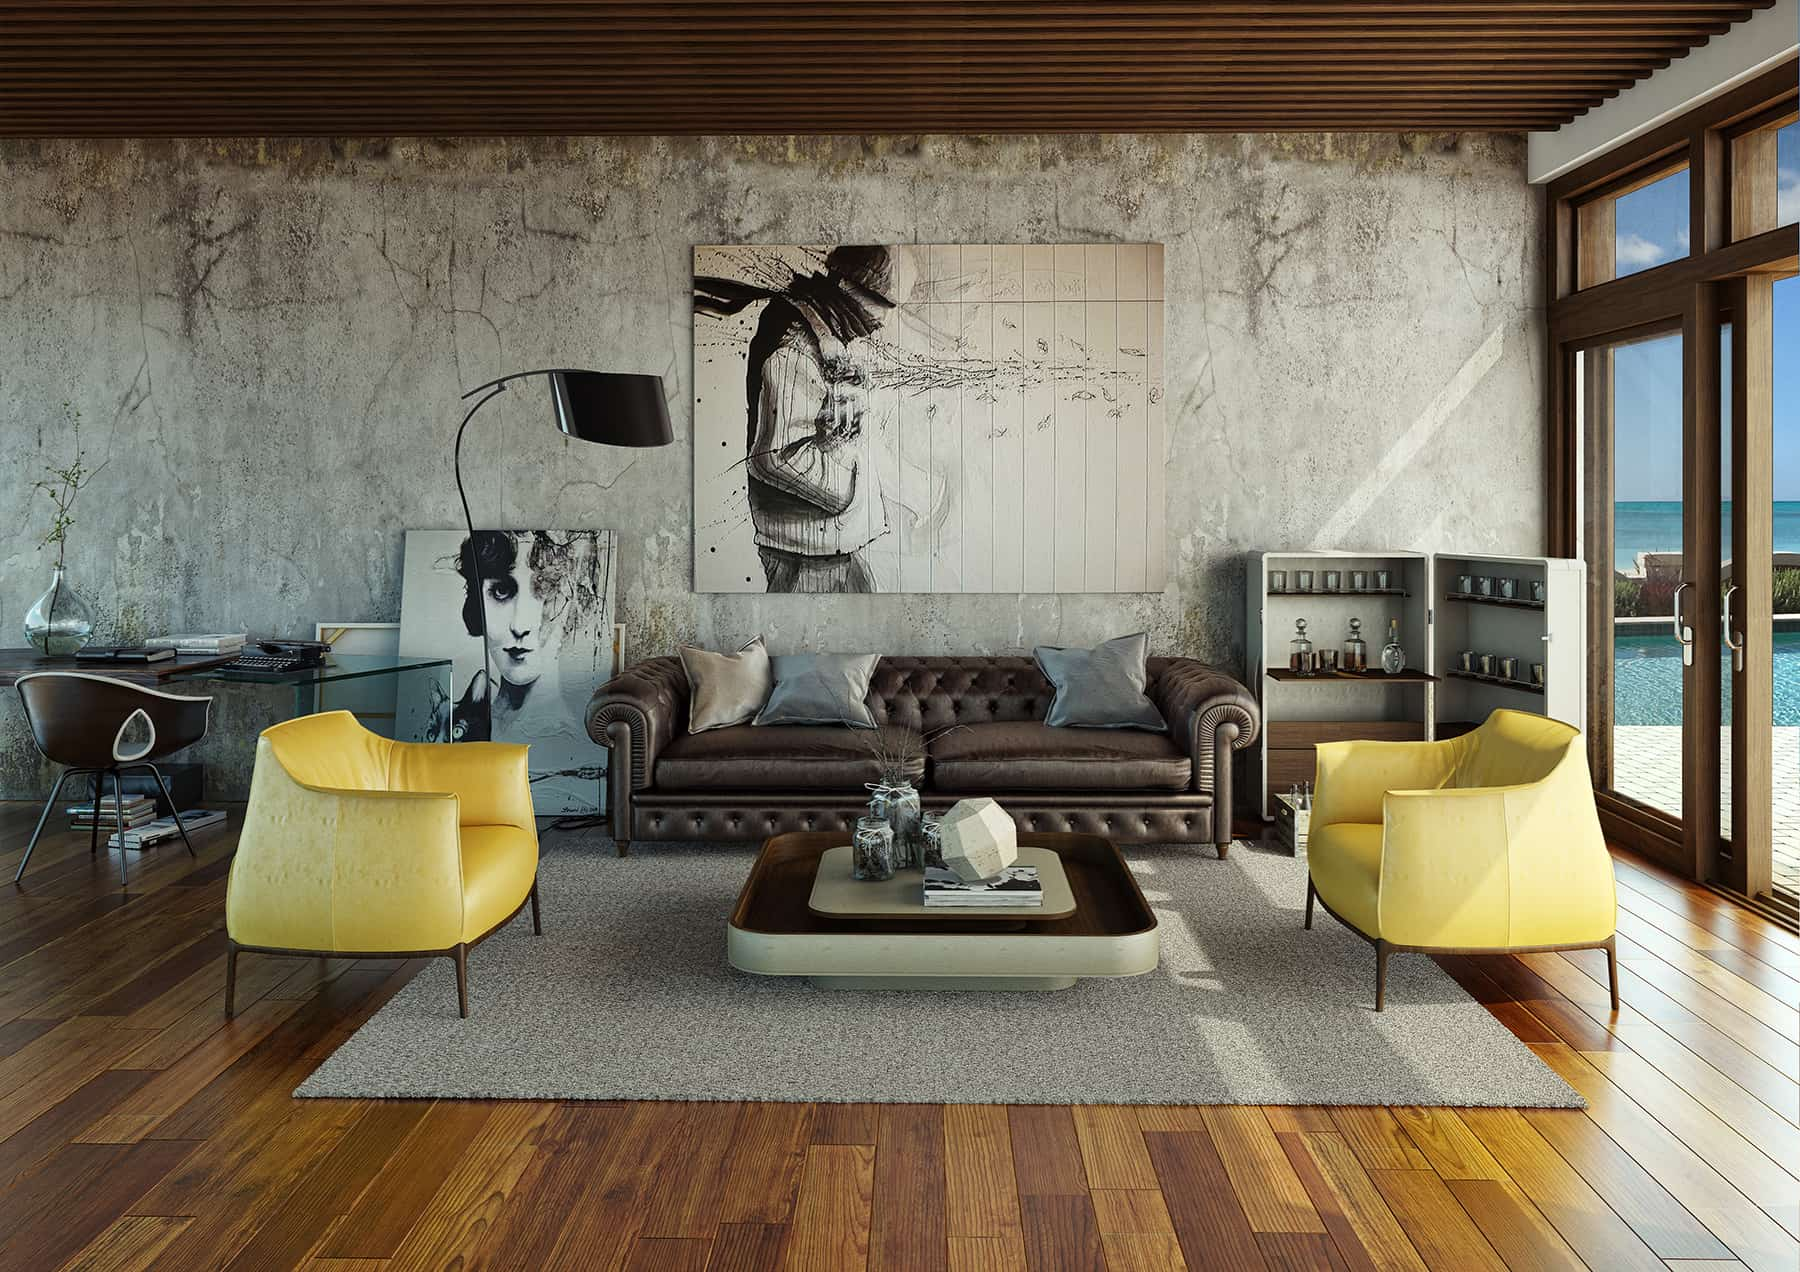 Ascetic yet sturated with style interior featuring yellow armchairs and picture at the wall